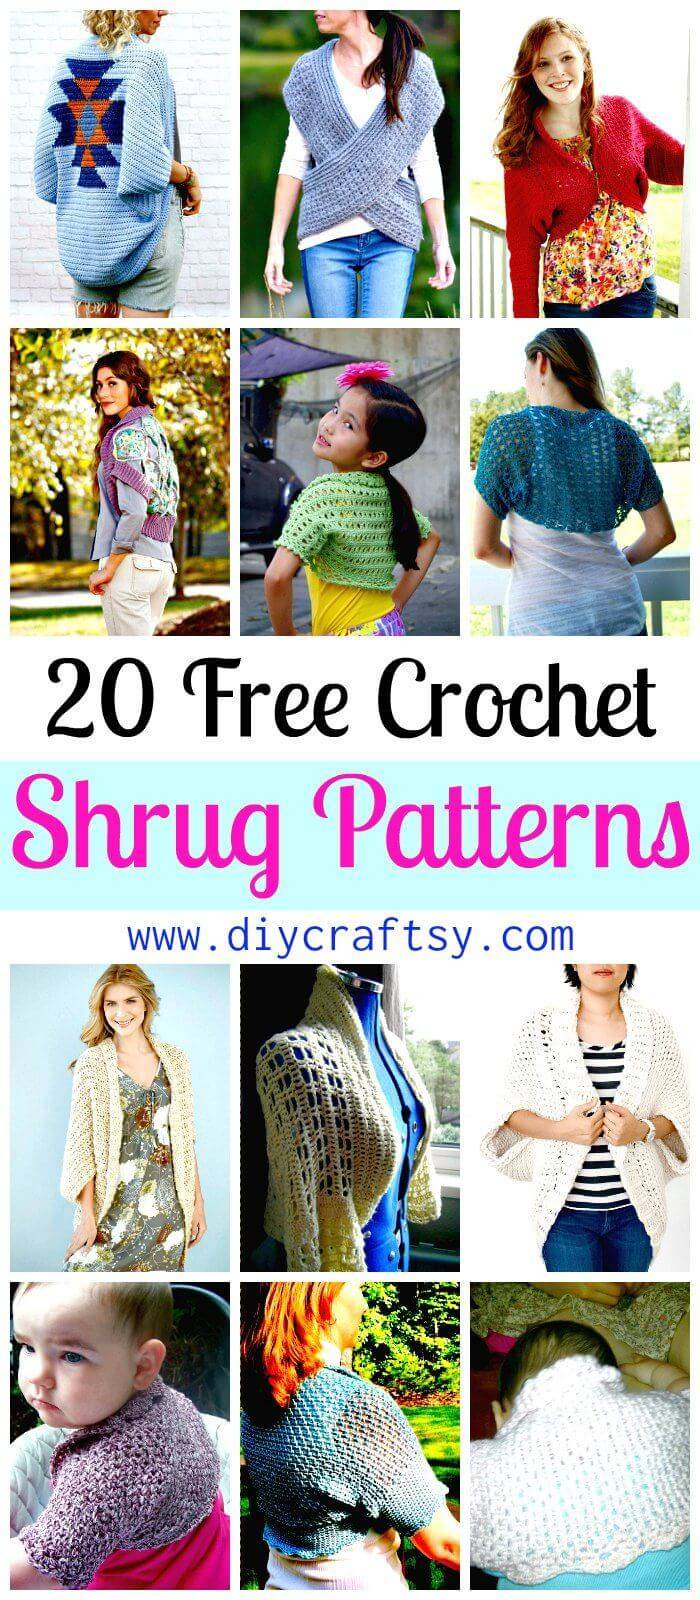 Crochet Shrug Patterns